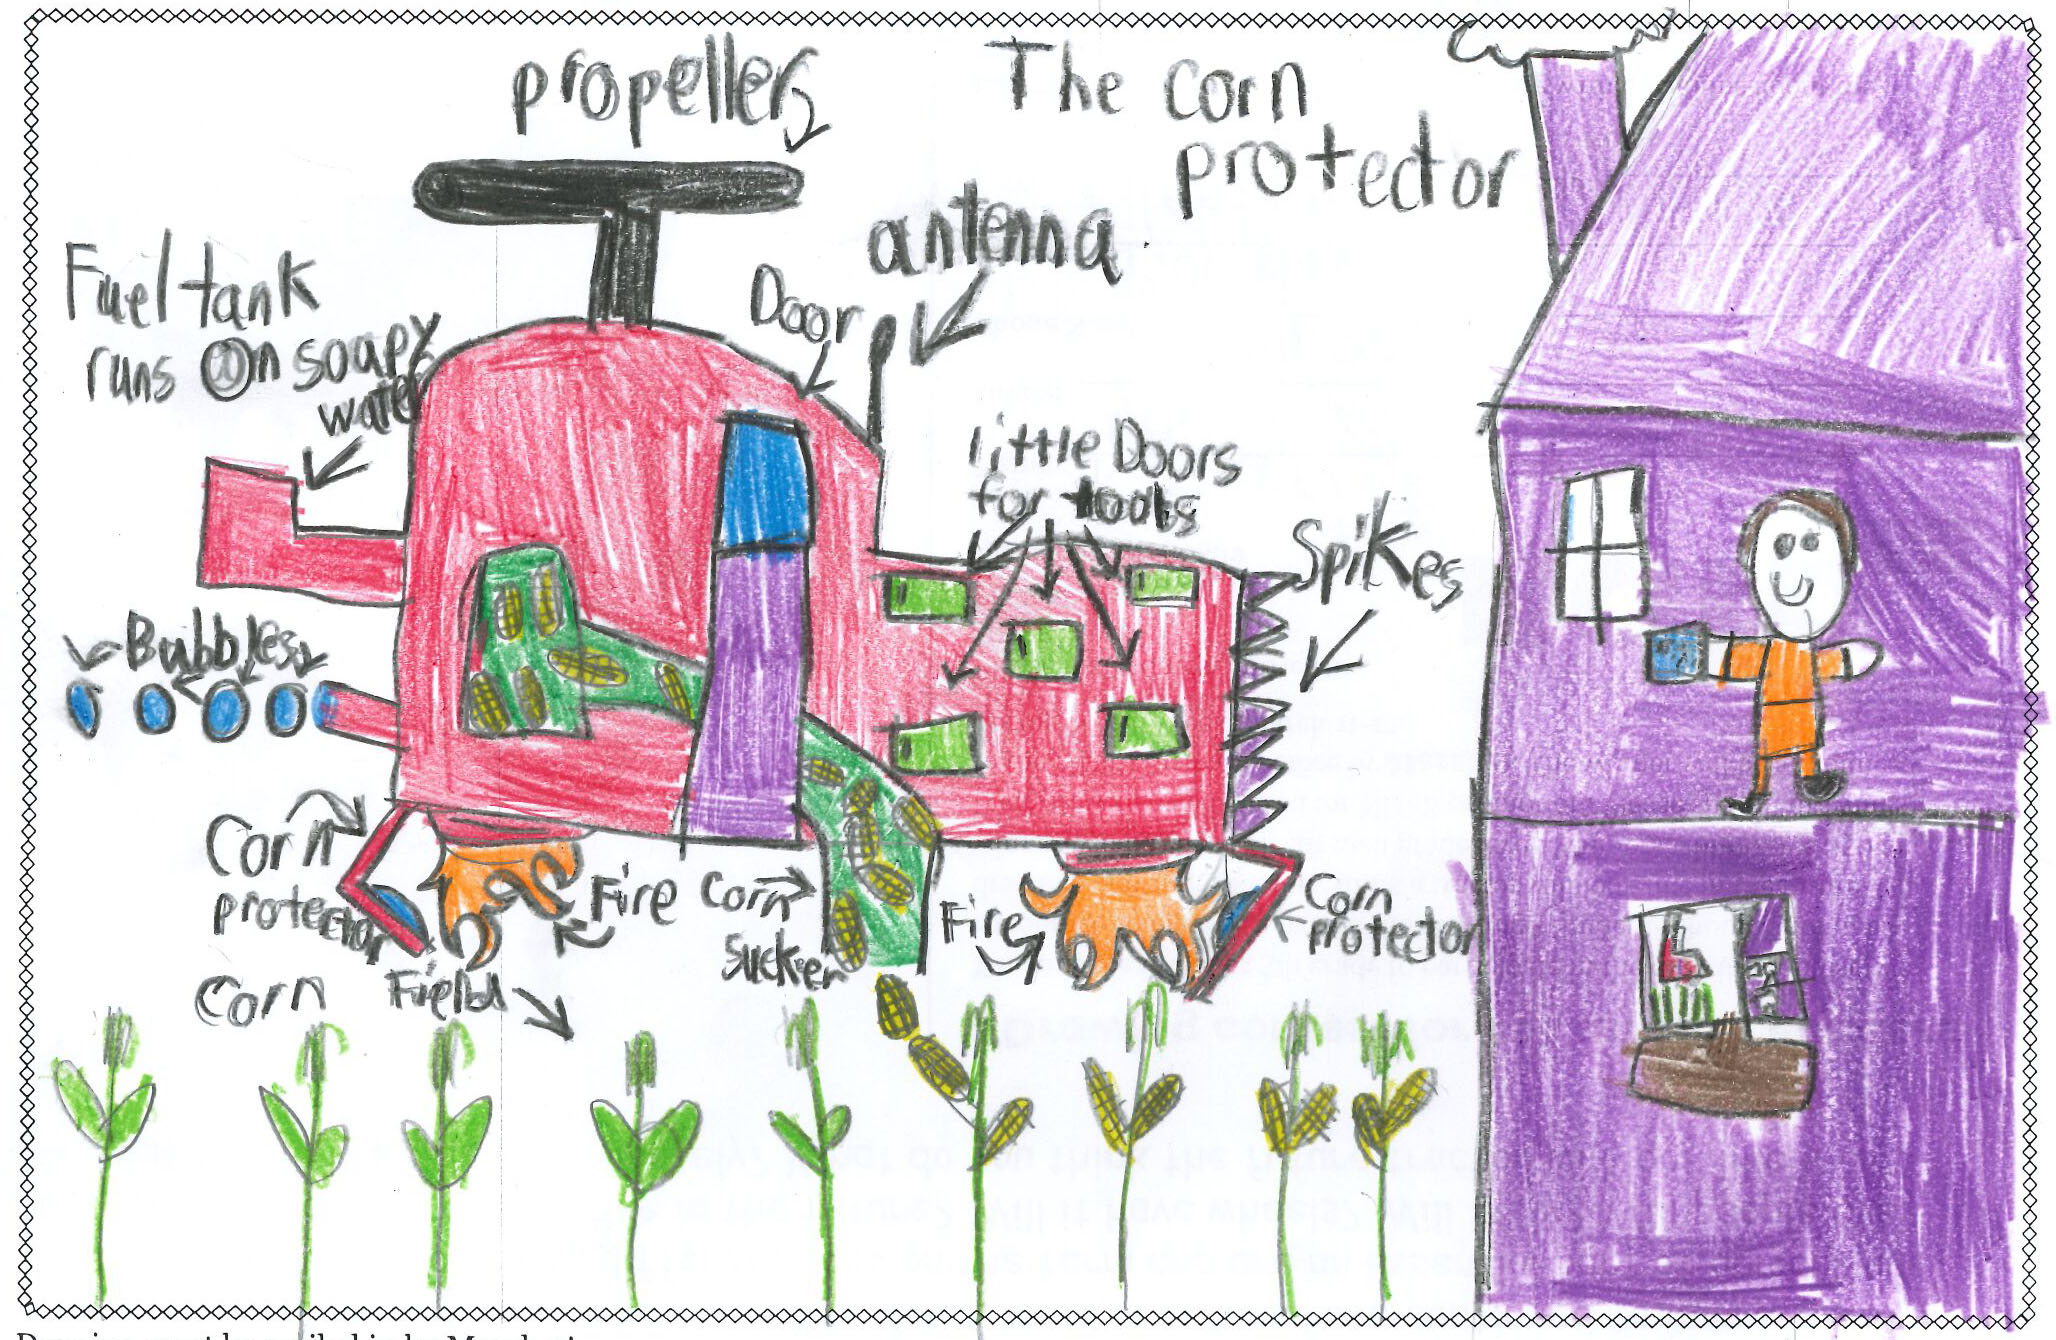 Kids draw tractors of the future.